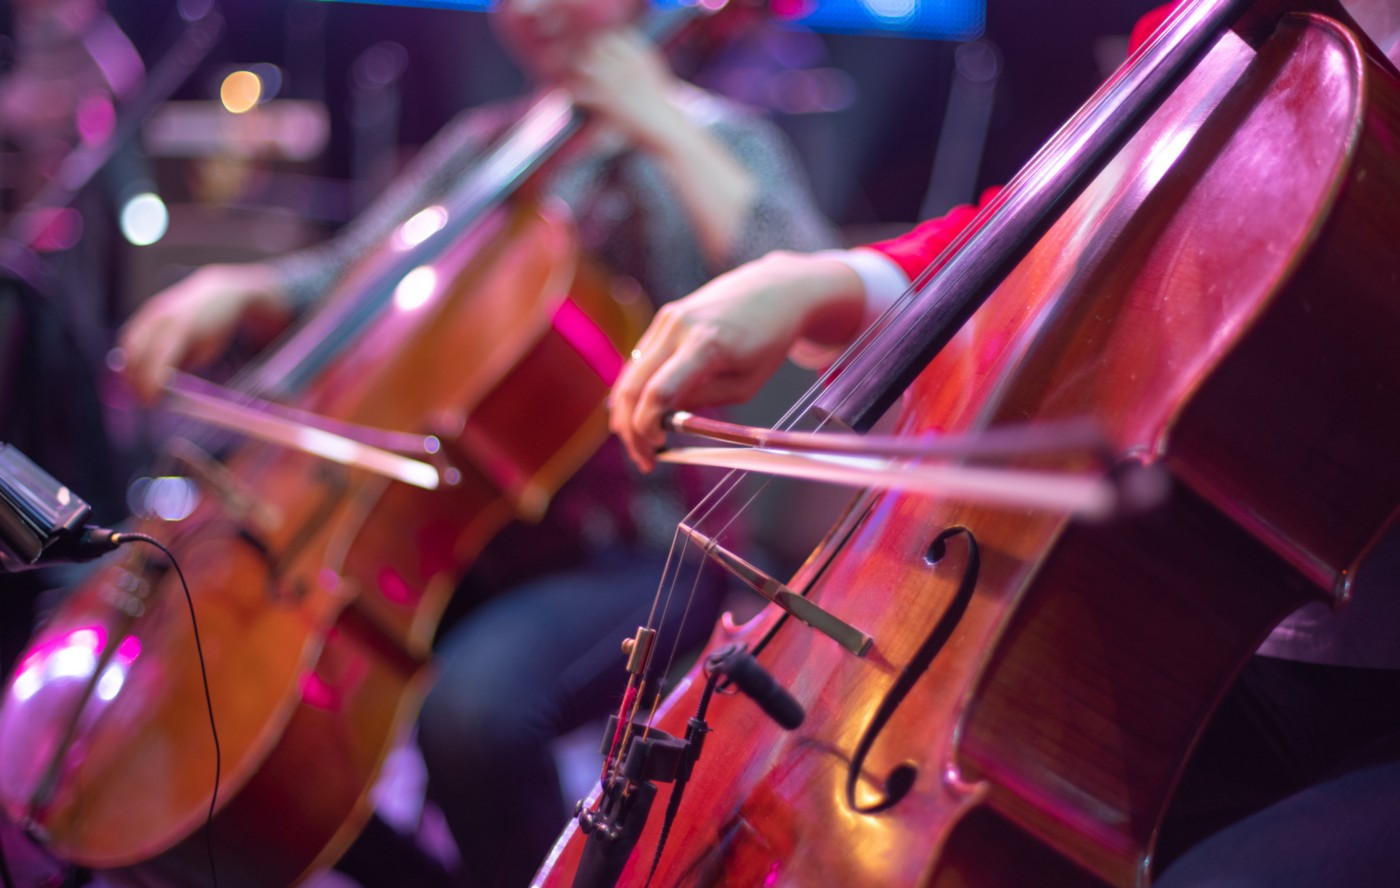 Performers play the cello at a concert.